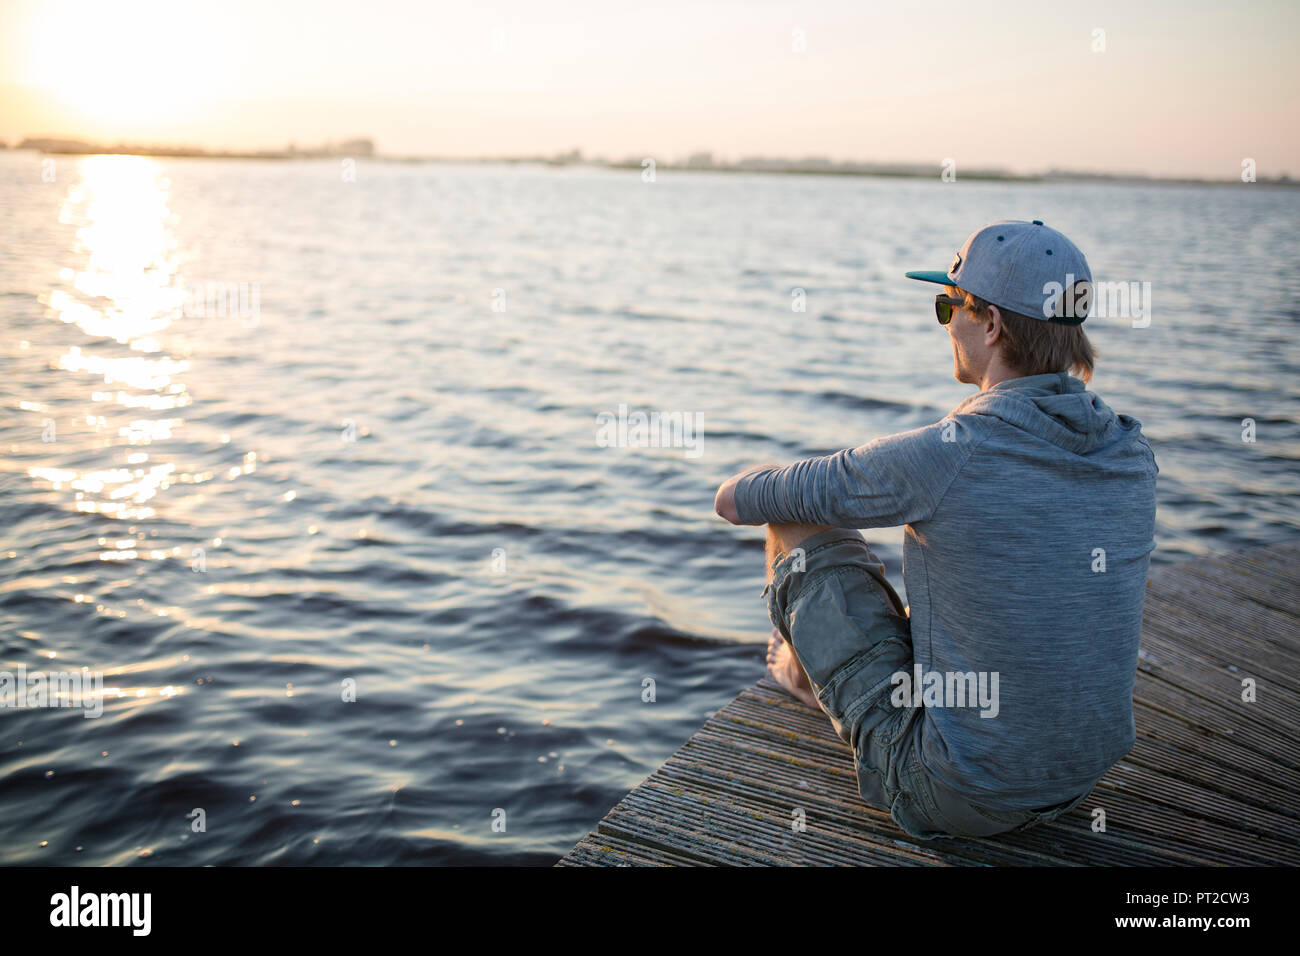 Man sitting on wooden boardwalk, enjoying sunset - Stock Image